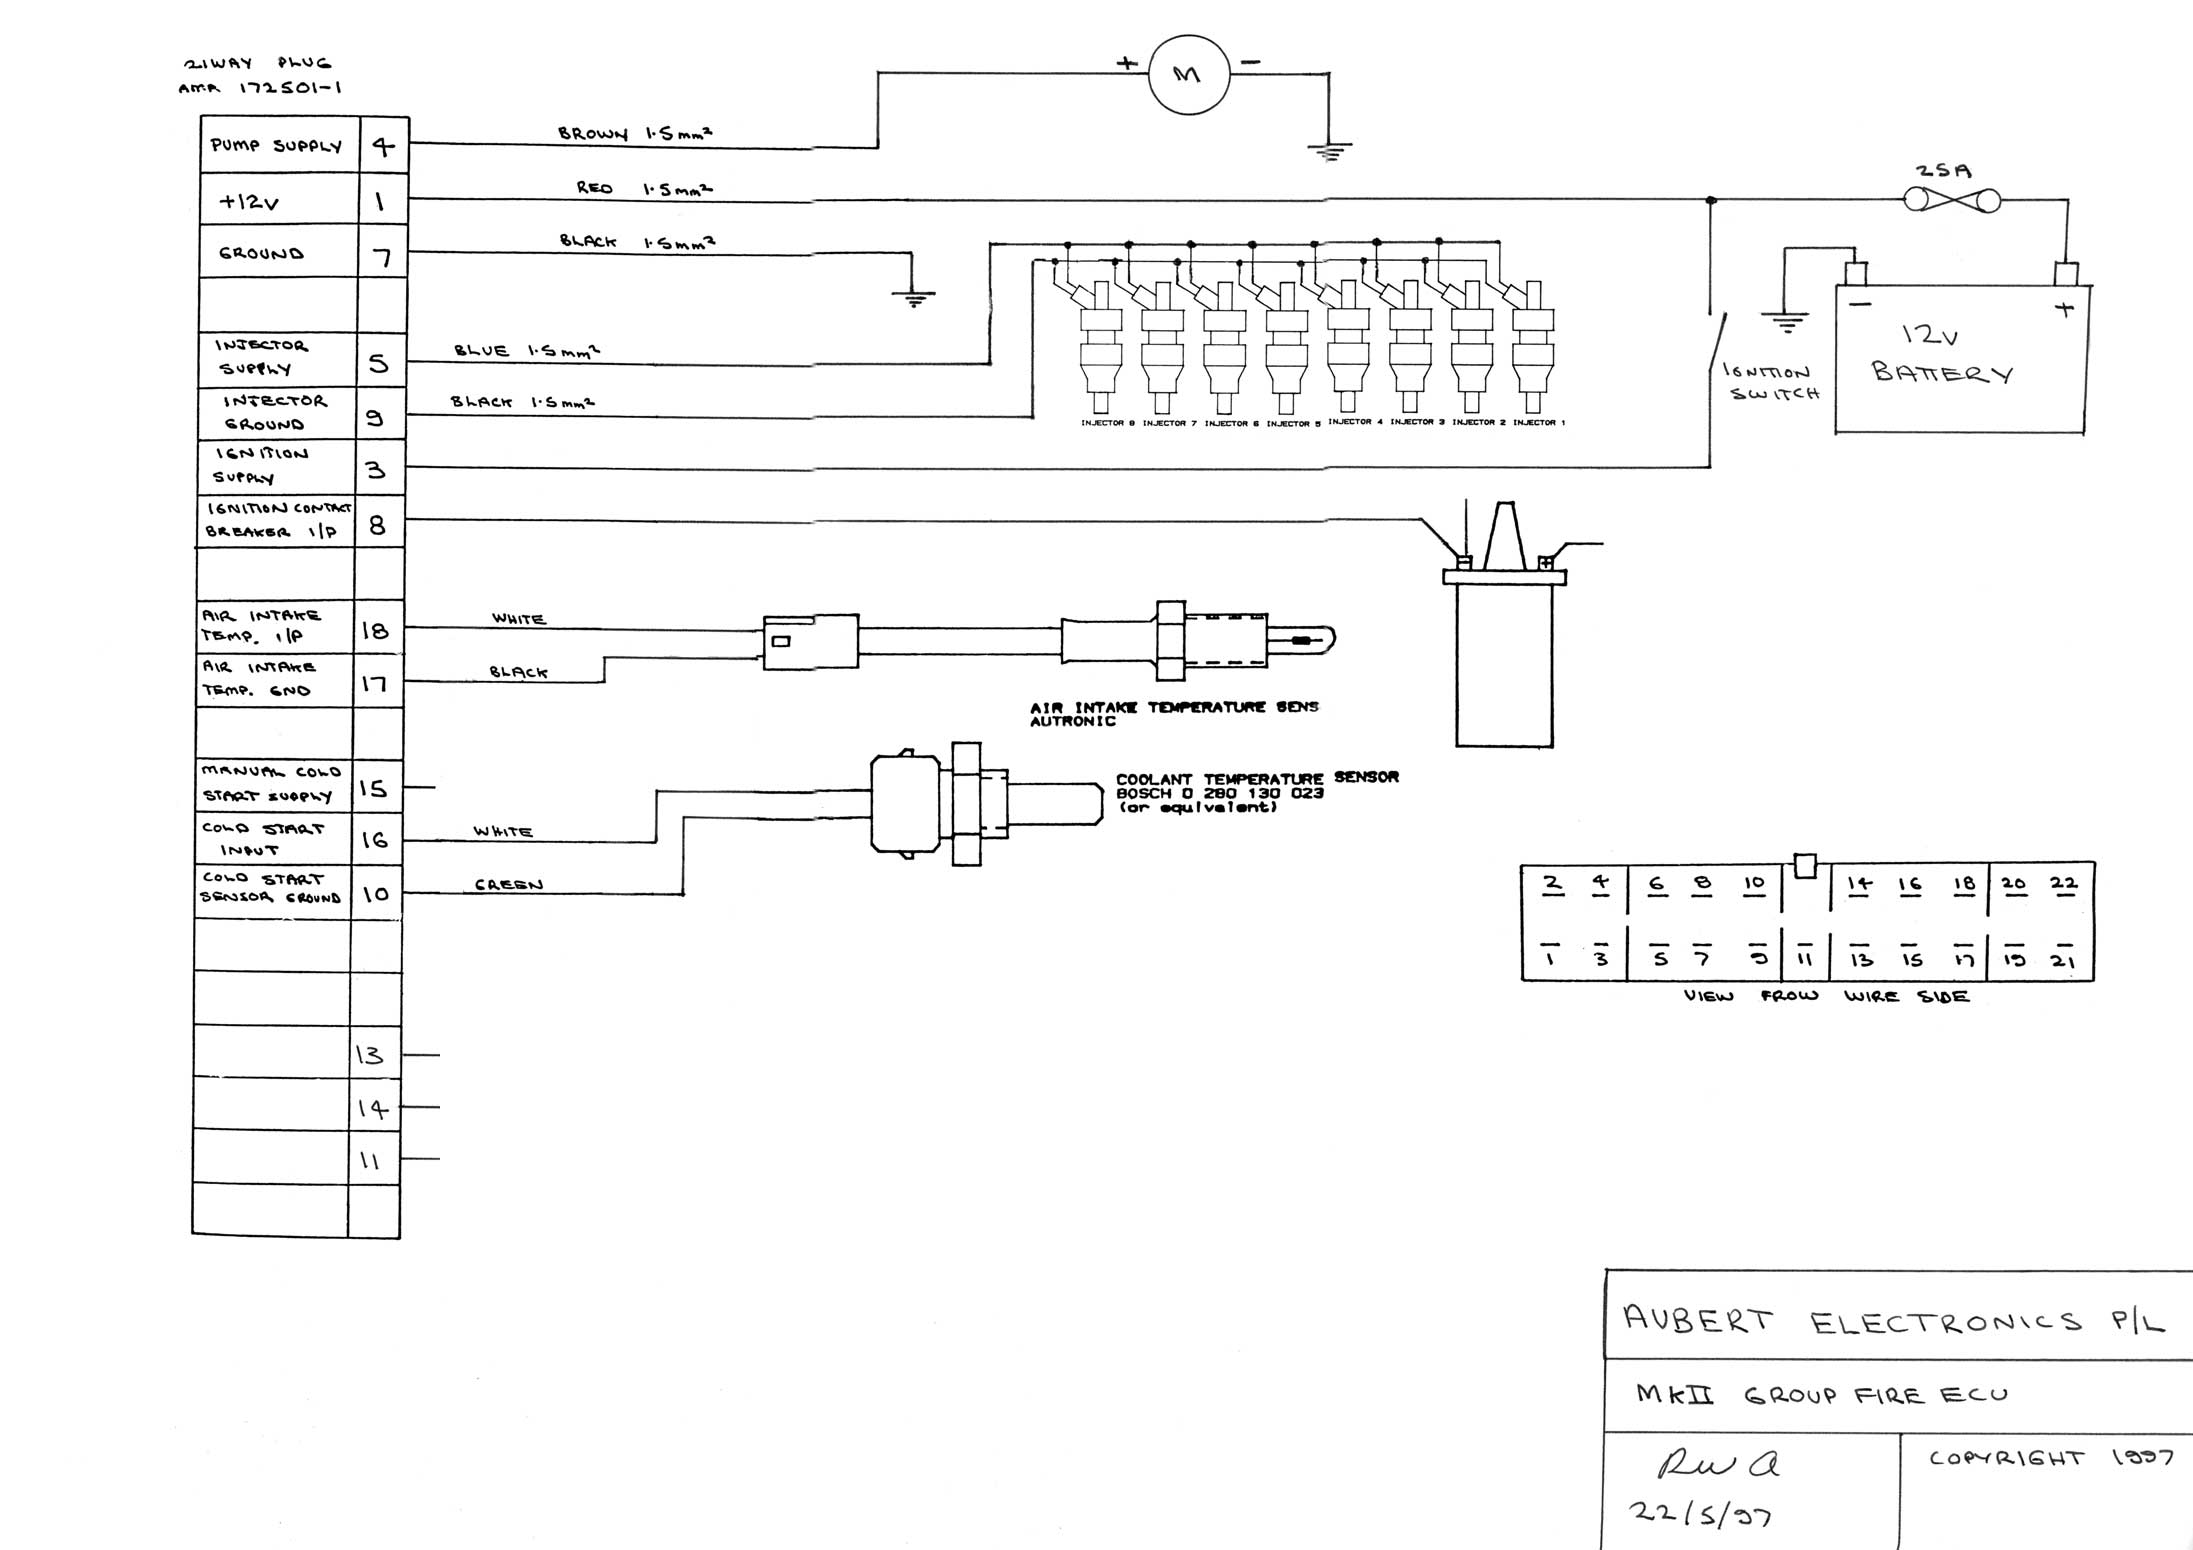 Group fire_wiring wiring diagram page smc fan wiring diagram at alyssarenee.co